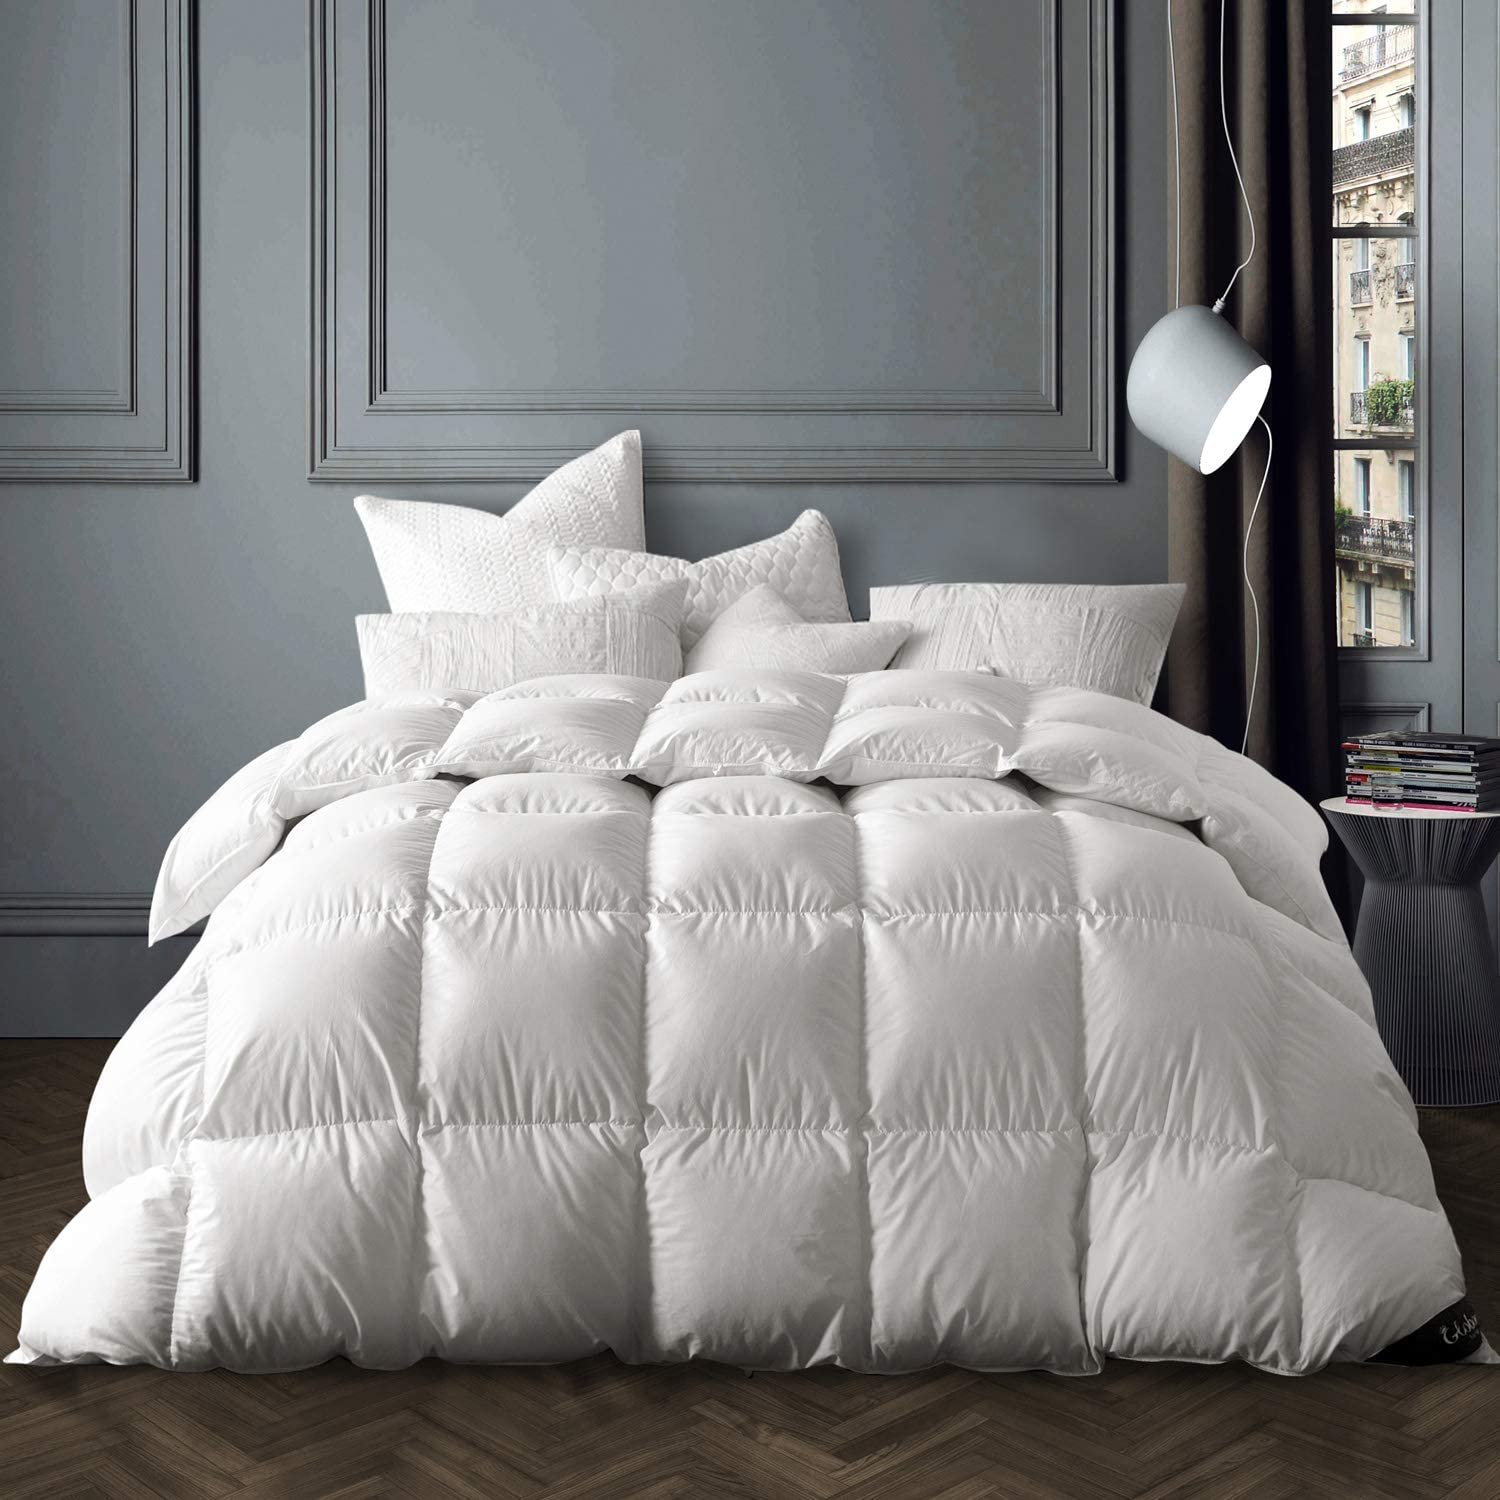 Globon White Goose Down Comforter Queen/Full Size, 50 OZ Fill Weight, 700 Fill Power, 400 Thread Count 100% Cotton Shell, Heavy Weight for Winter, White Color